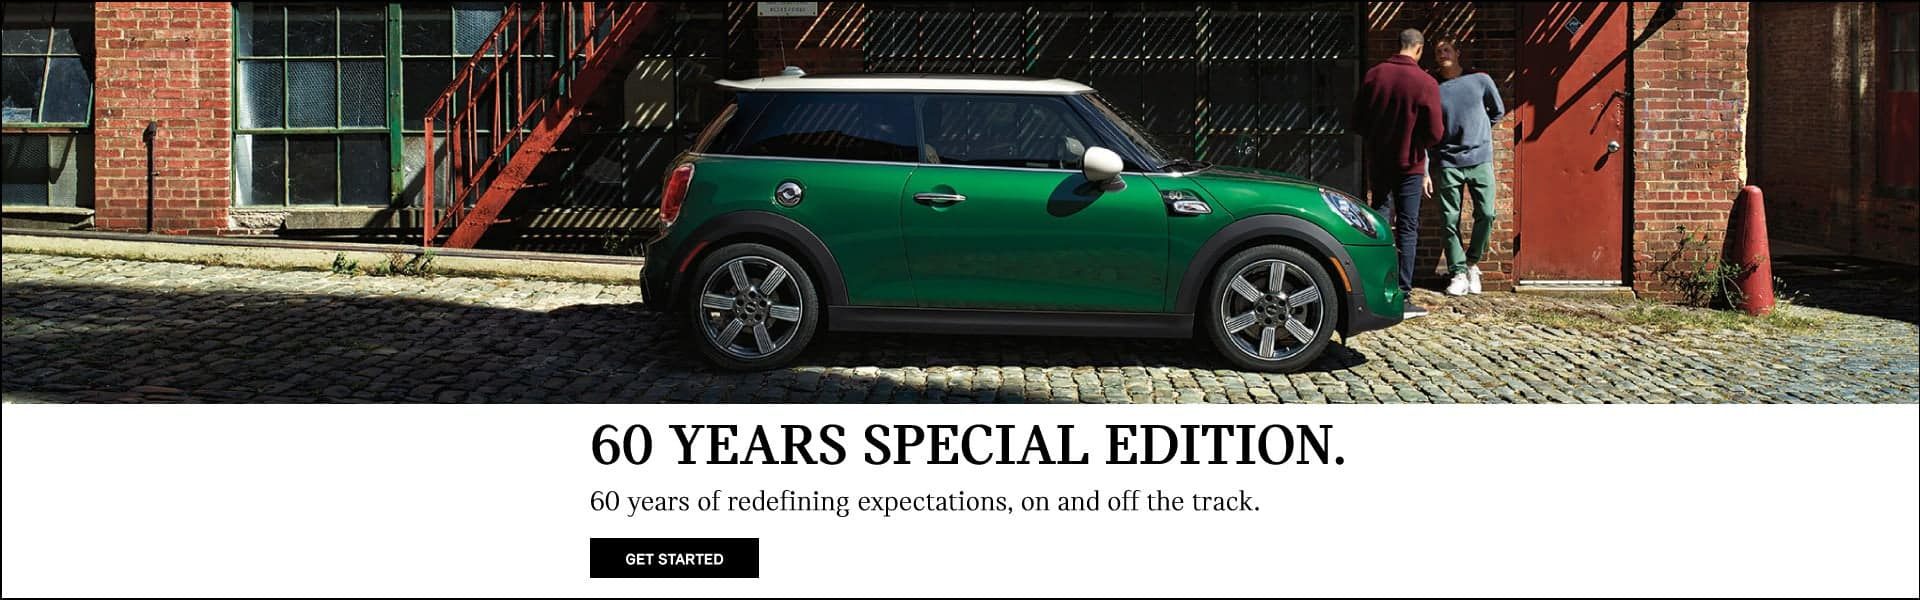 MINI 60 Years Special Edition